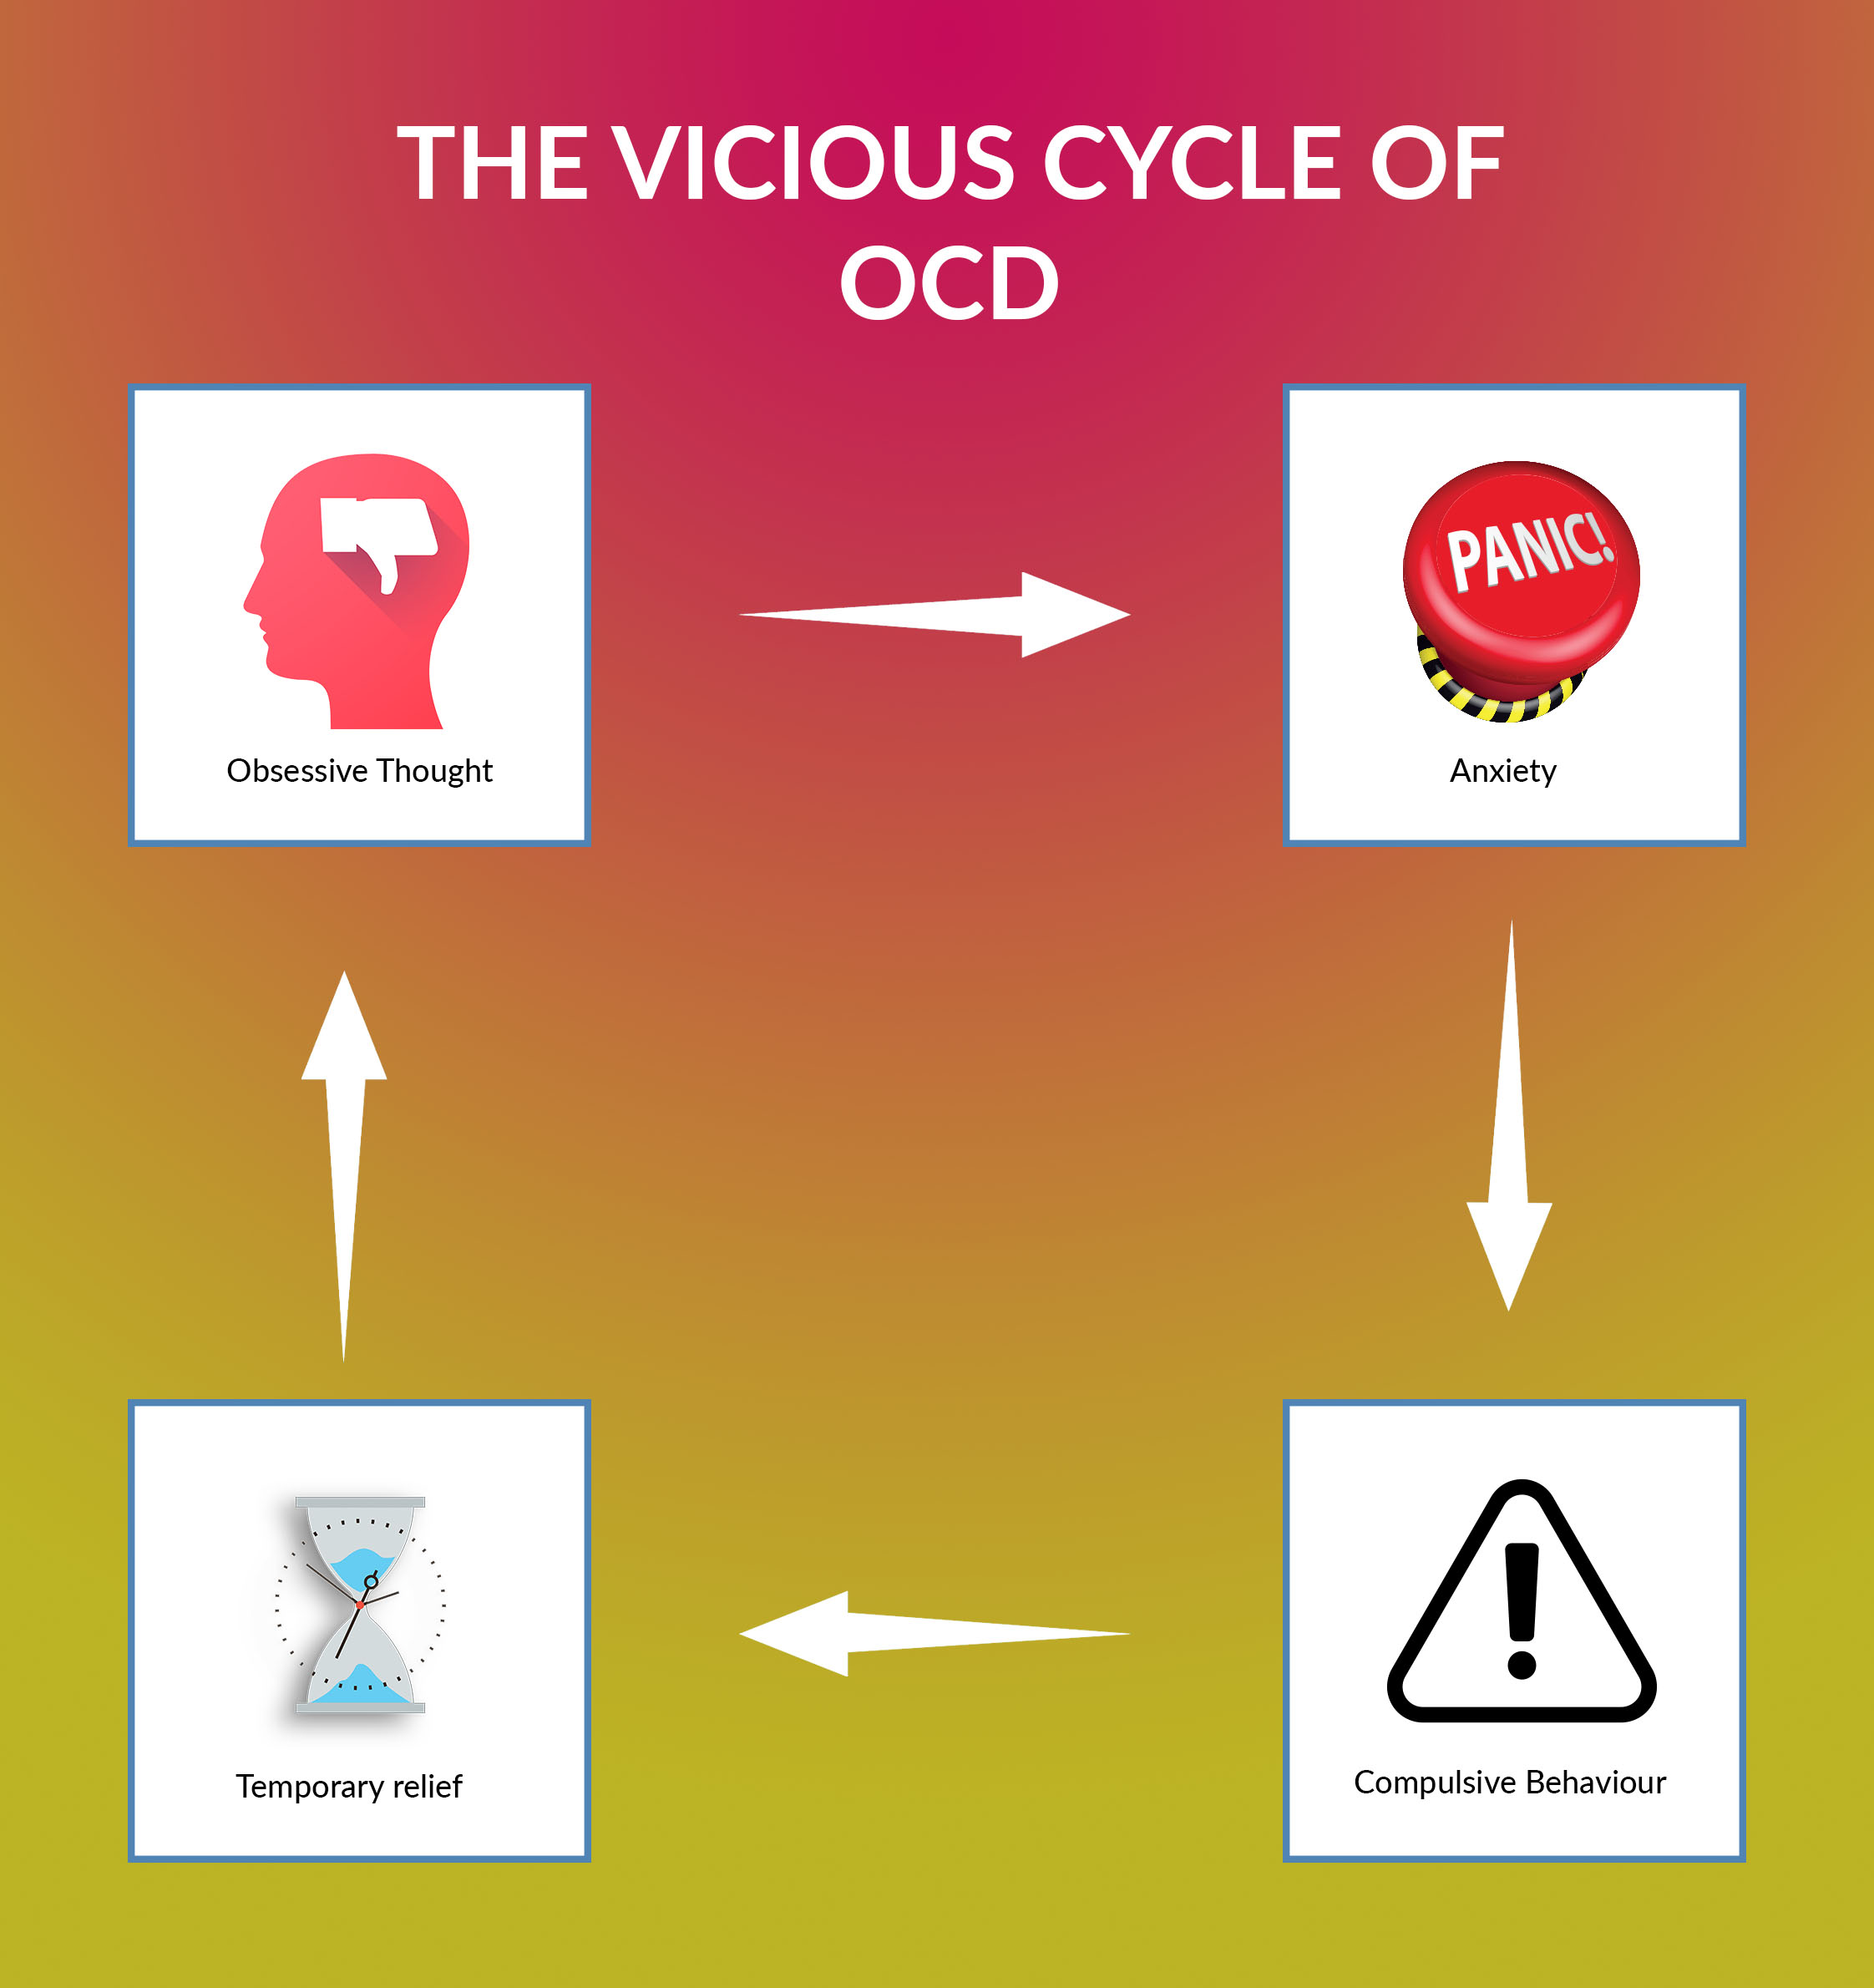 The cycle of obsessive compulsive disorder